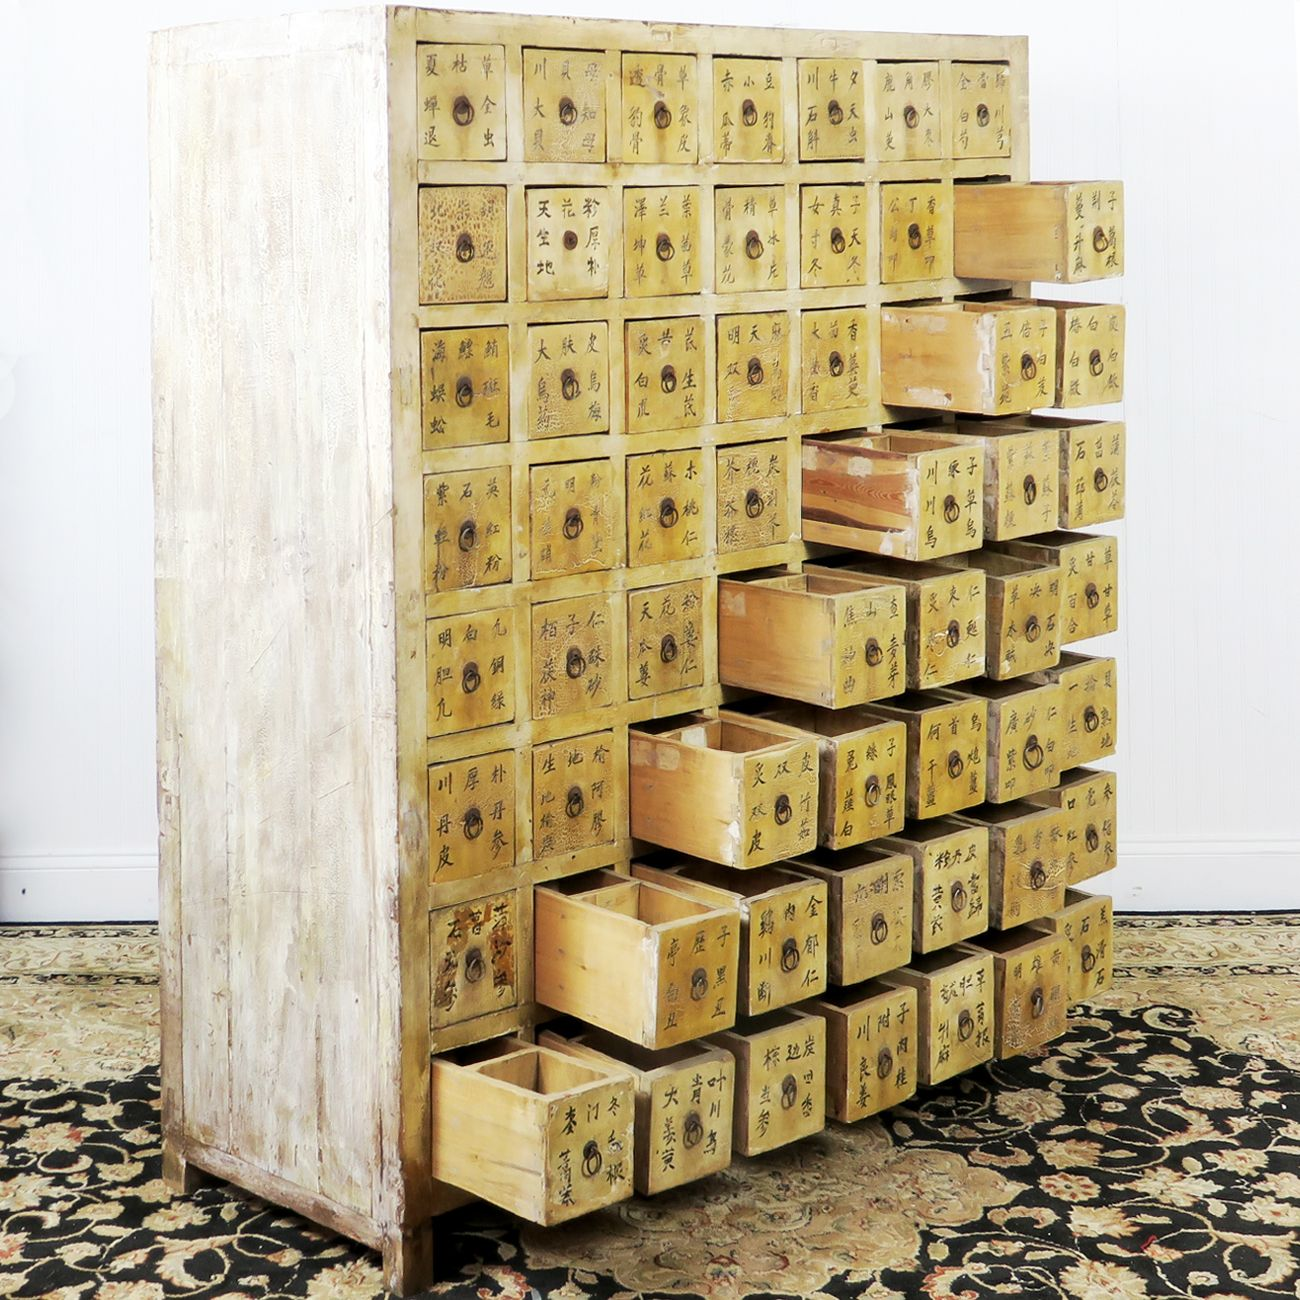 Antique Chinese Medicine Herb Cabinet 56 Drawer This Unusual Can Be Used To Many Items And Would The Focal Point Of Any Room